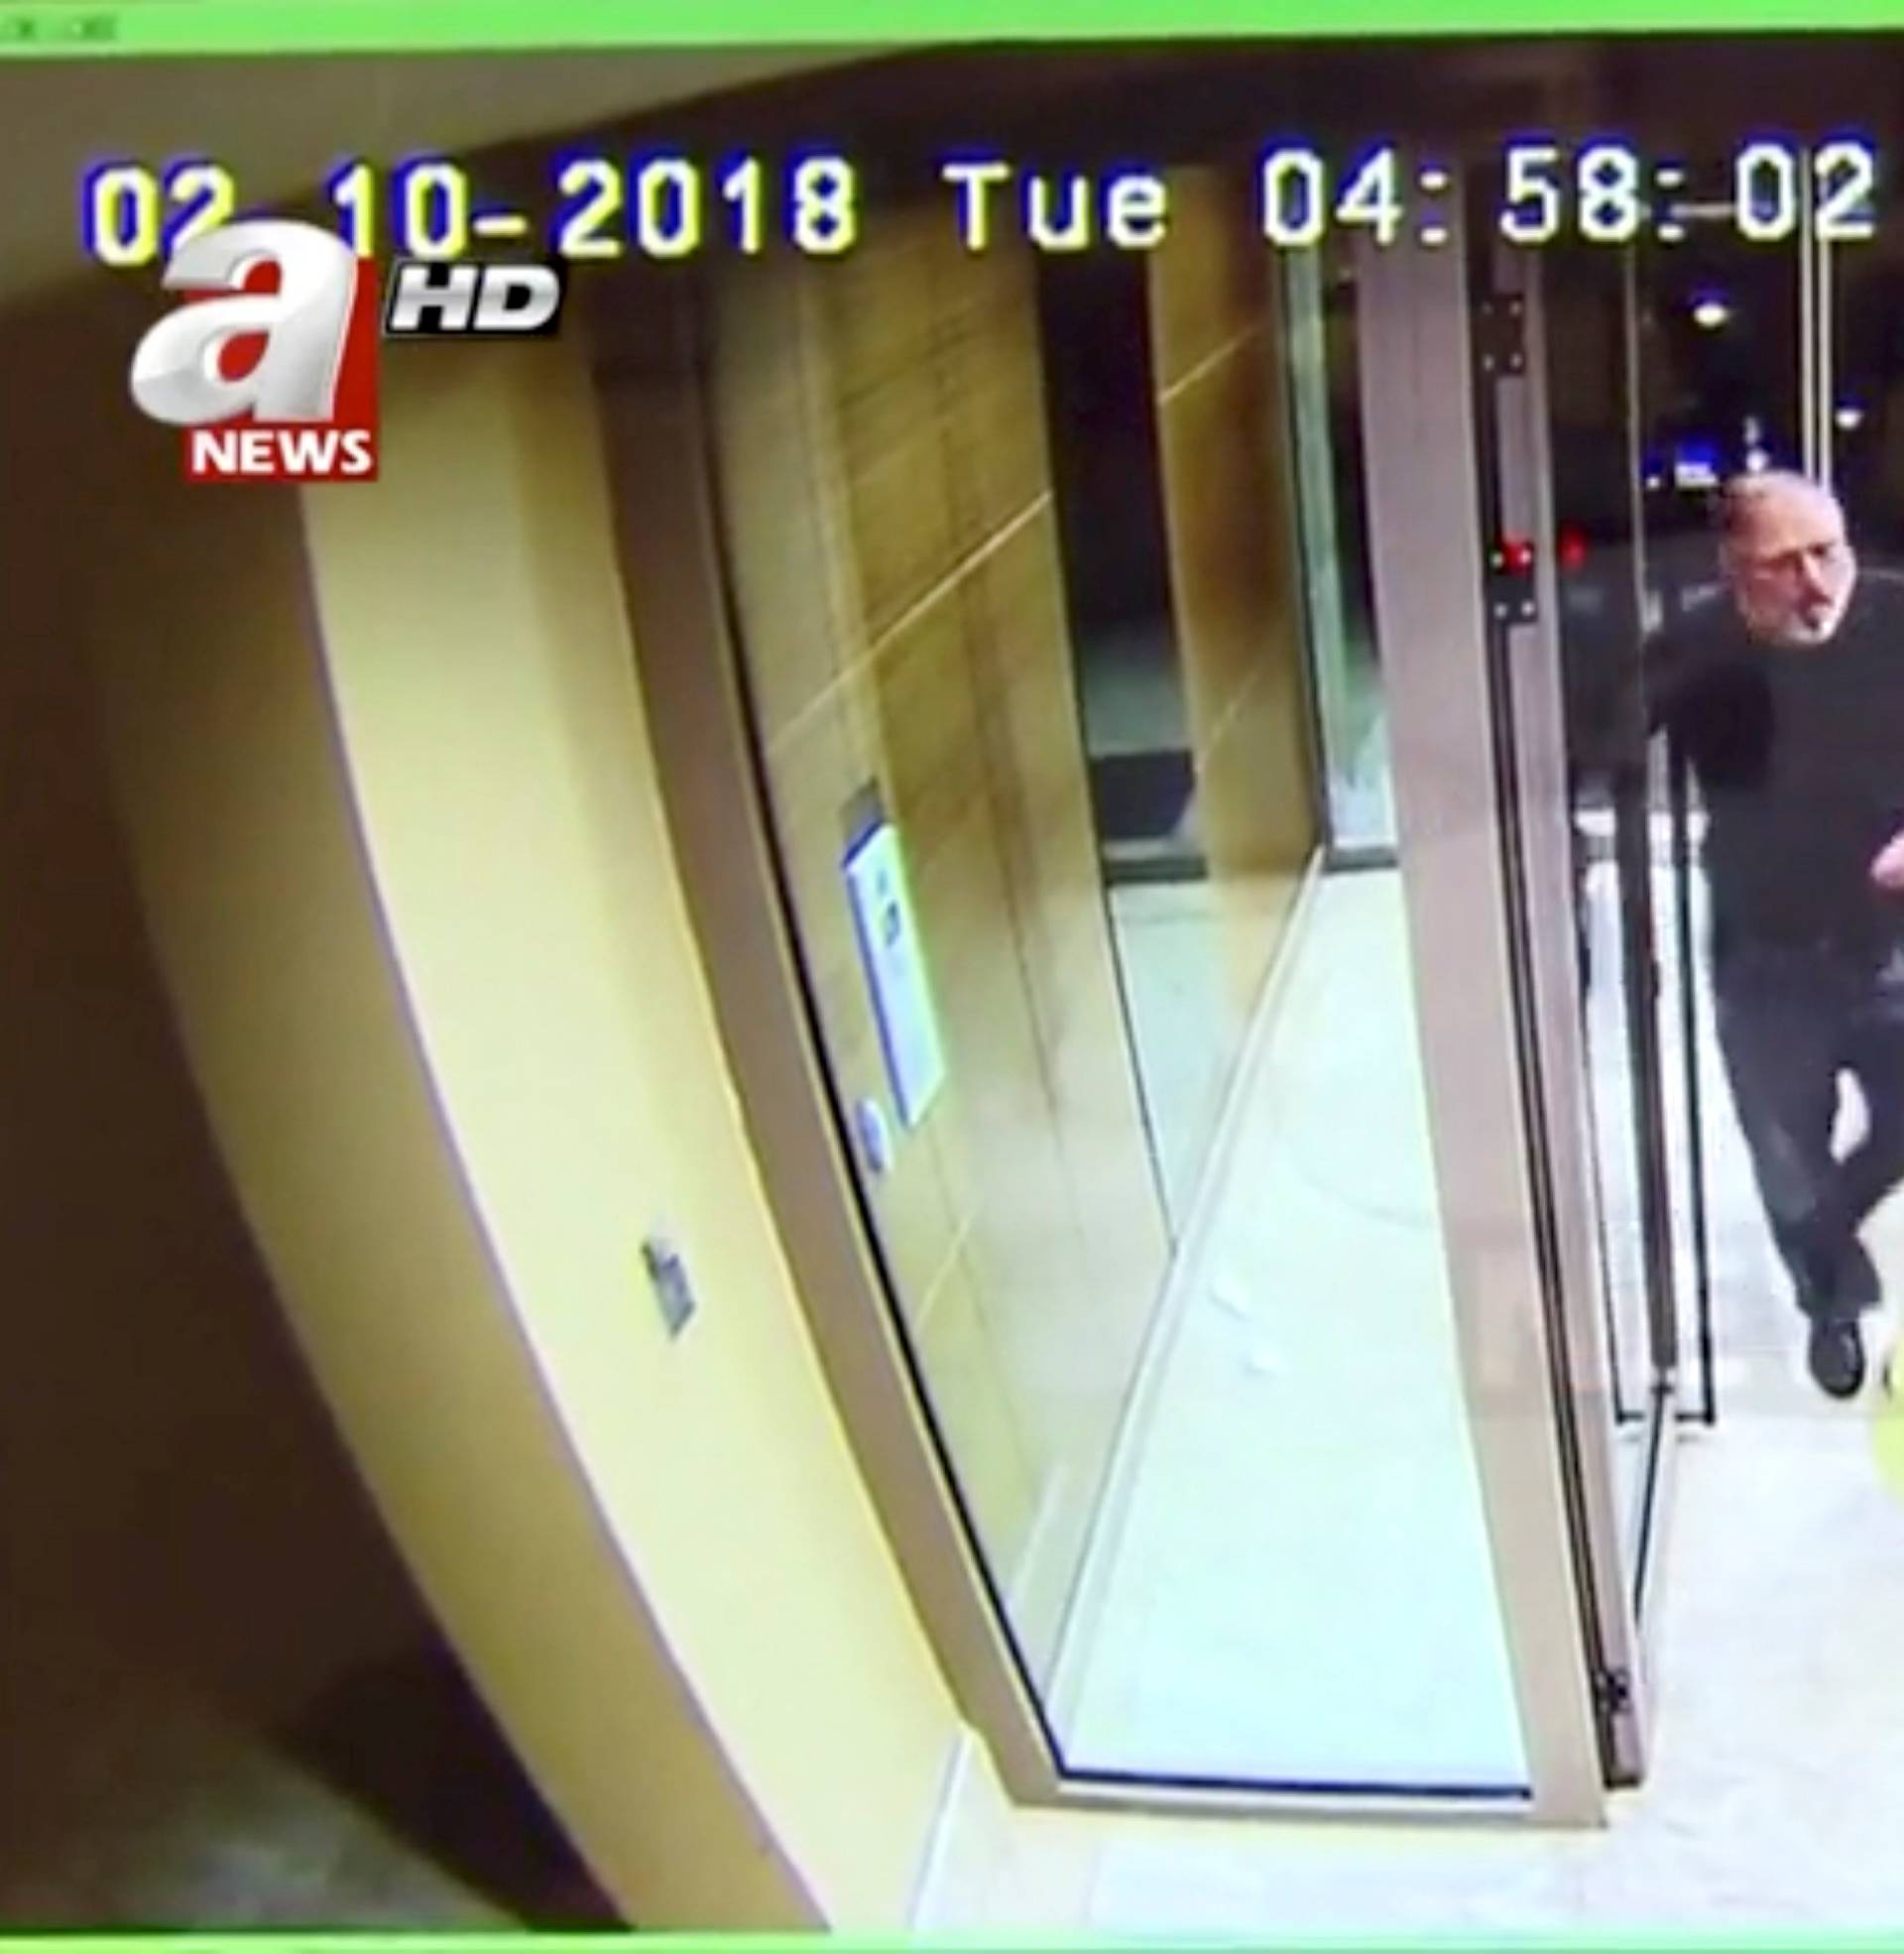 Still image taken from CCTV video supports to show Khashoggi and his fiancee entering their residence